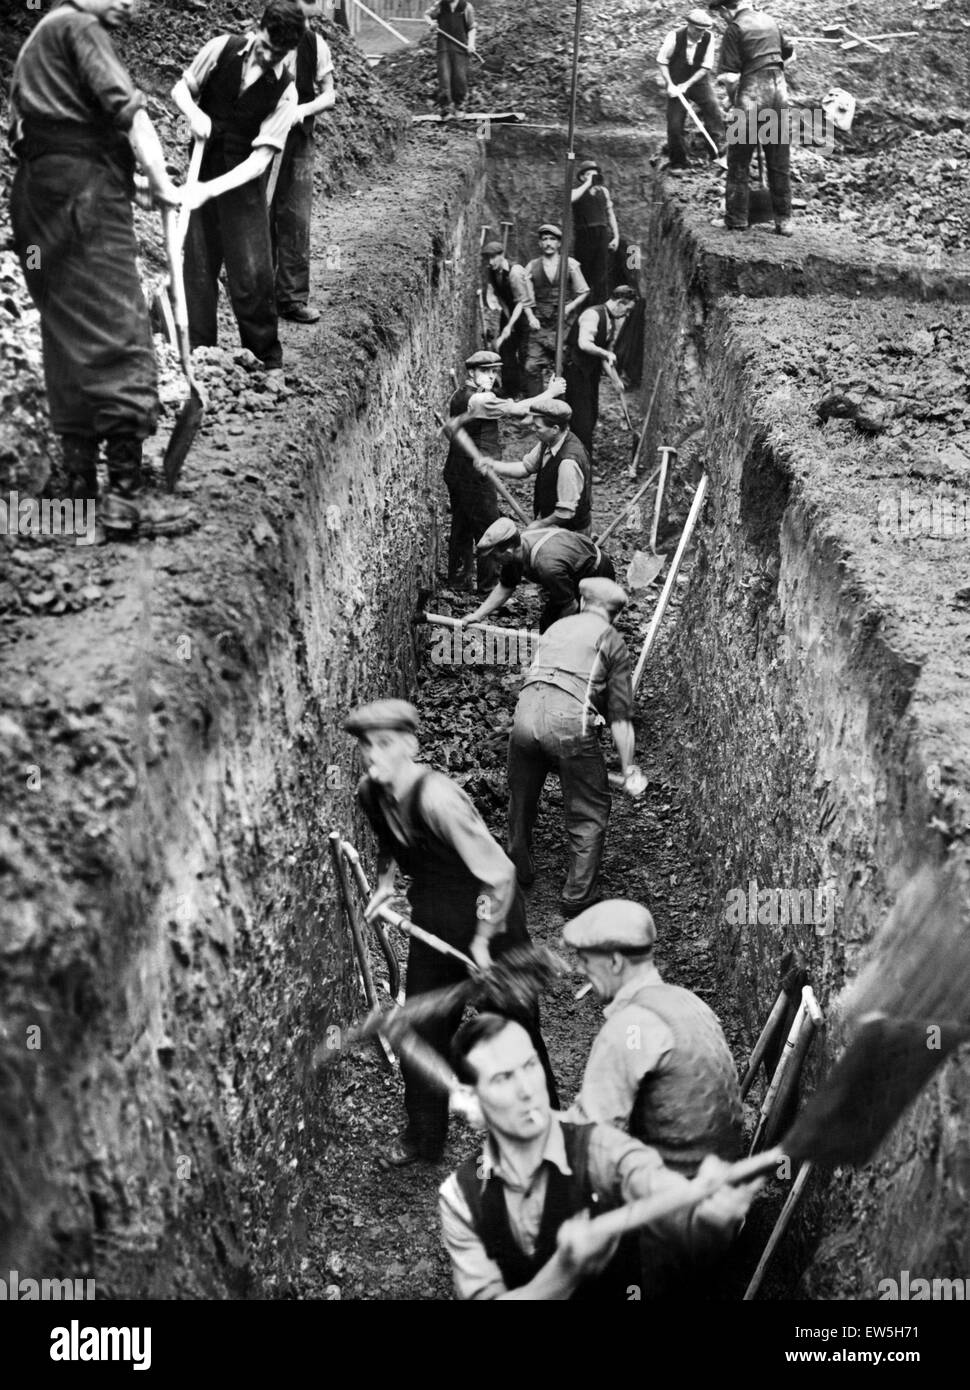 Men digging deep trenches in Birkenhead Park, which will become shelters.  Birkenhead, Merseyside, 28th September - Stock Image